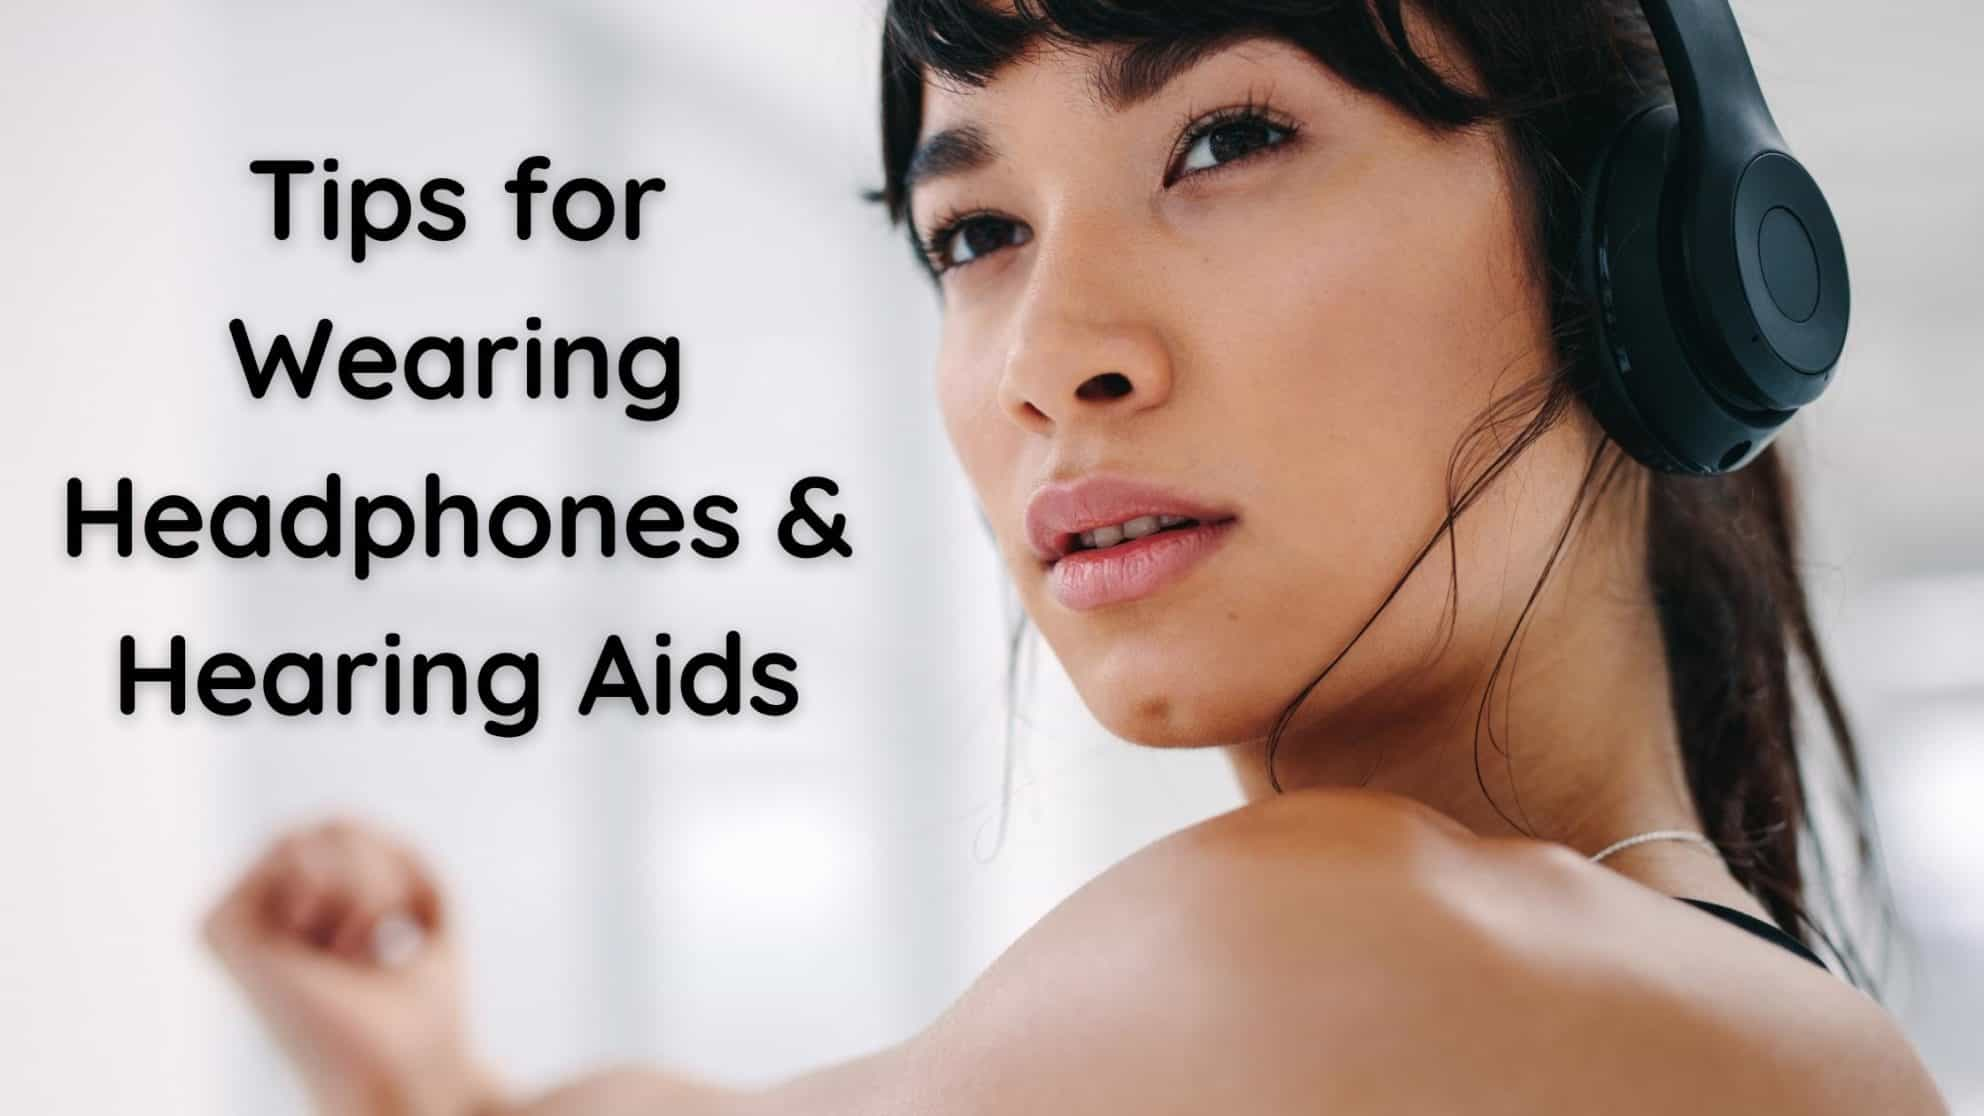 Tips for Wearing Headphones & Hearing Aids